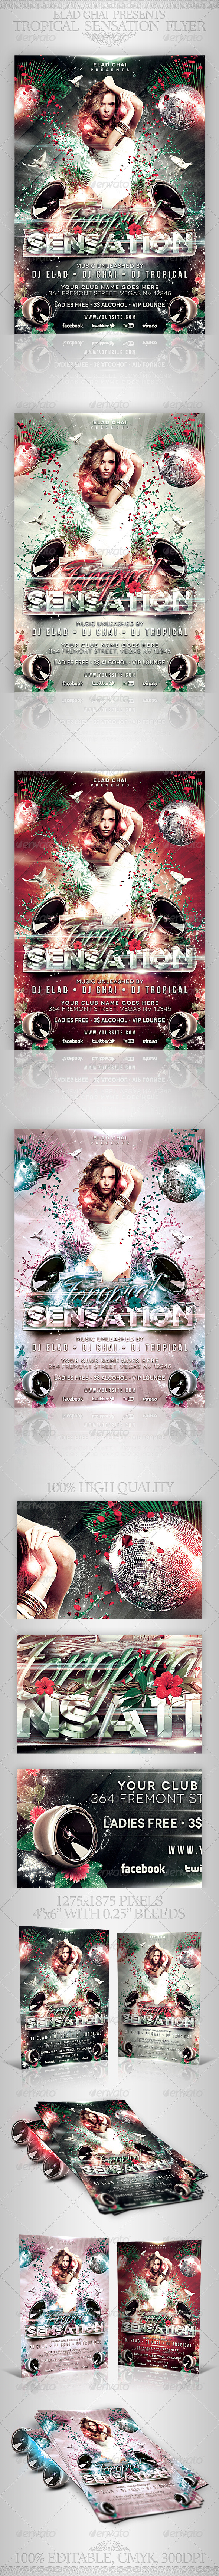 Tropical Sensation Party Flyer Template - Clubs &amp; Parties Events